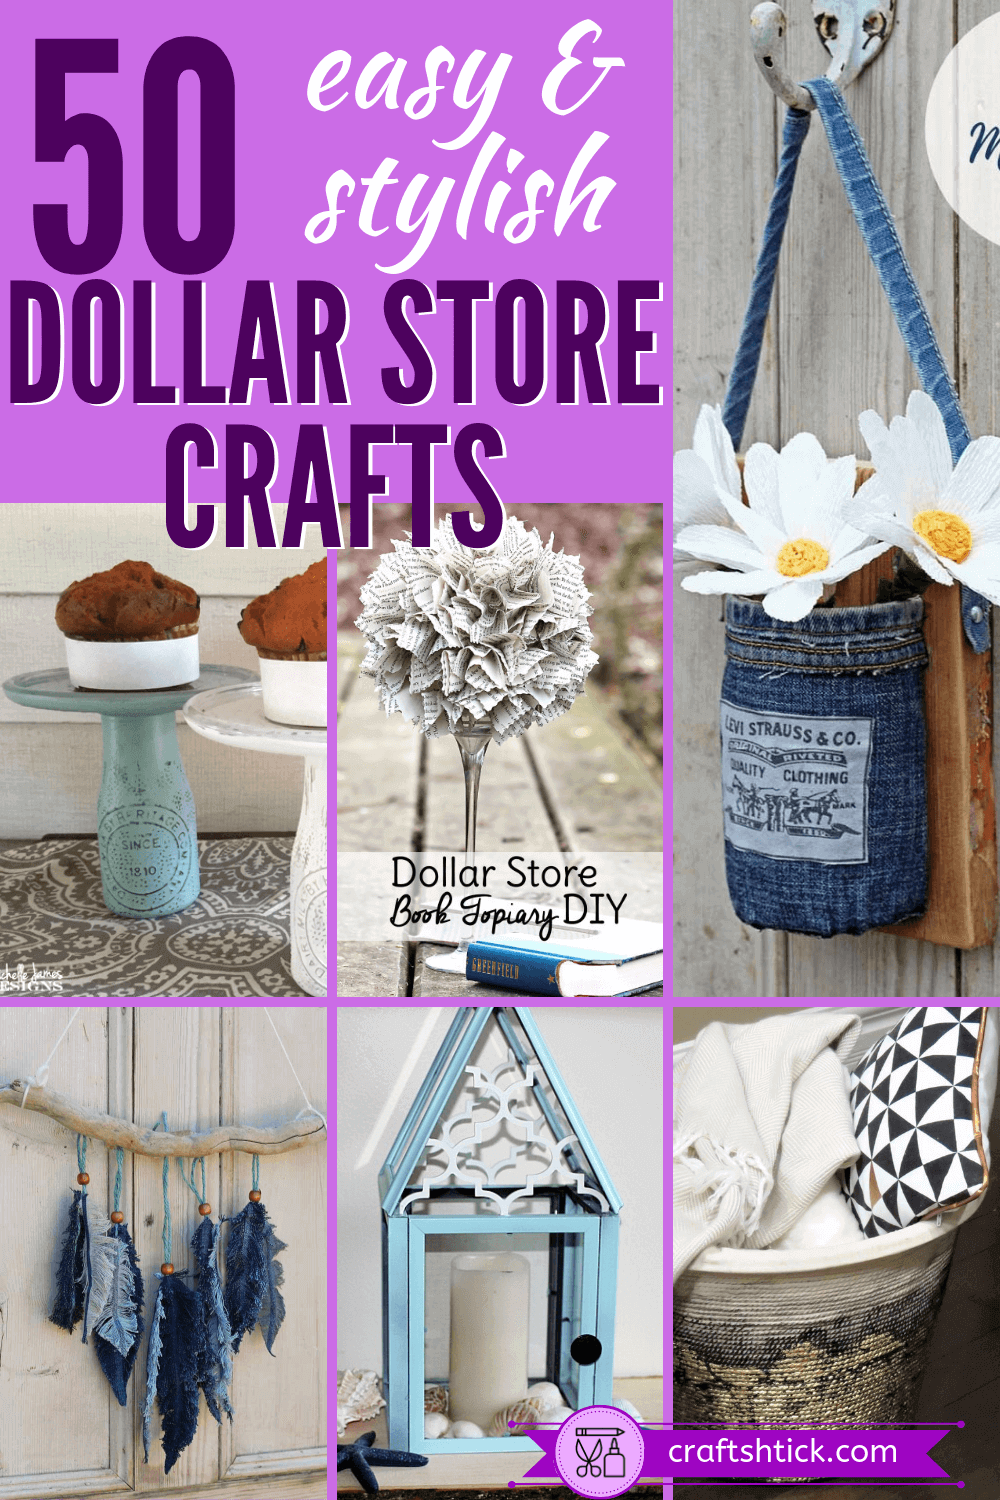 Here are 50 easy and beautiful Dollar Tree crafts and DIY dollar store projects for you to create. Make them for yourself or to give as gifts.